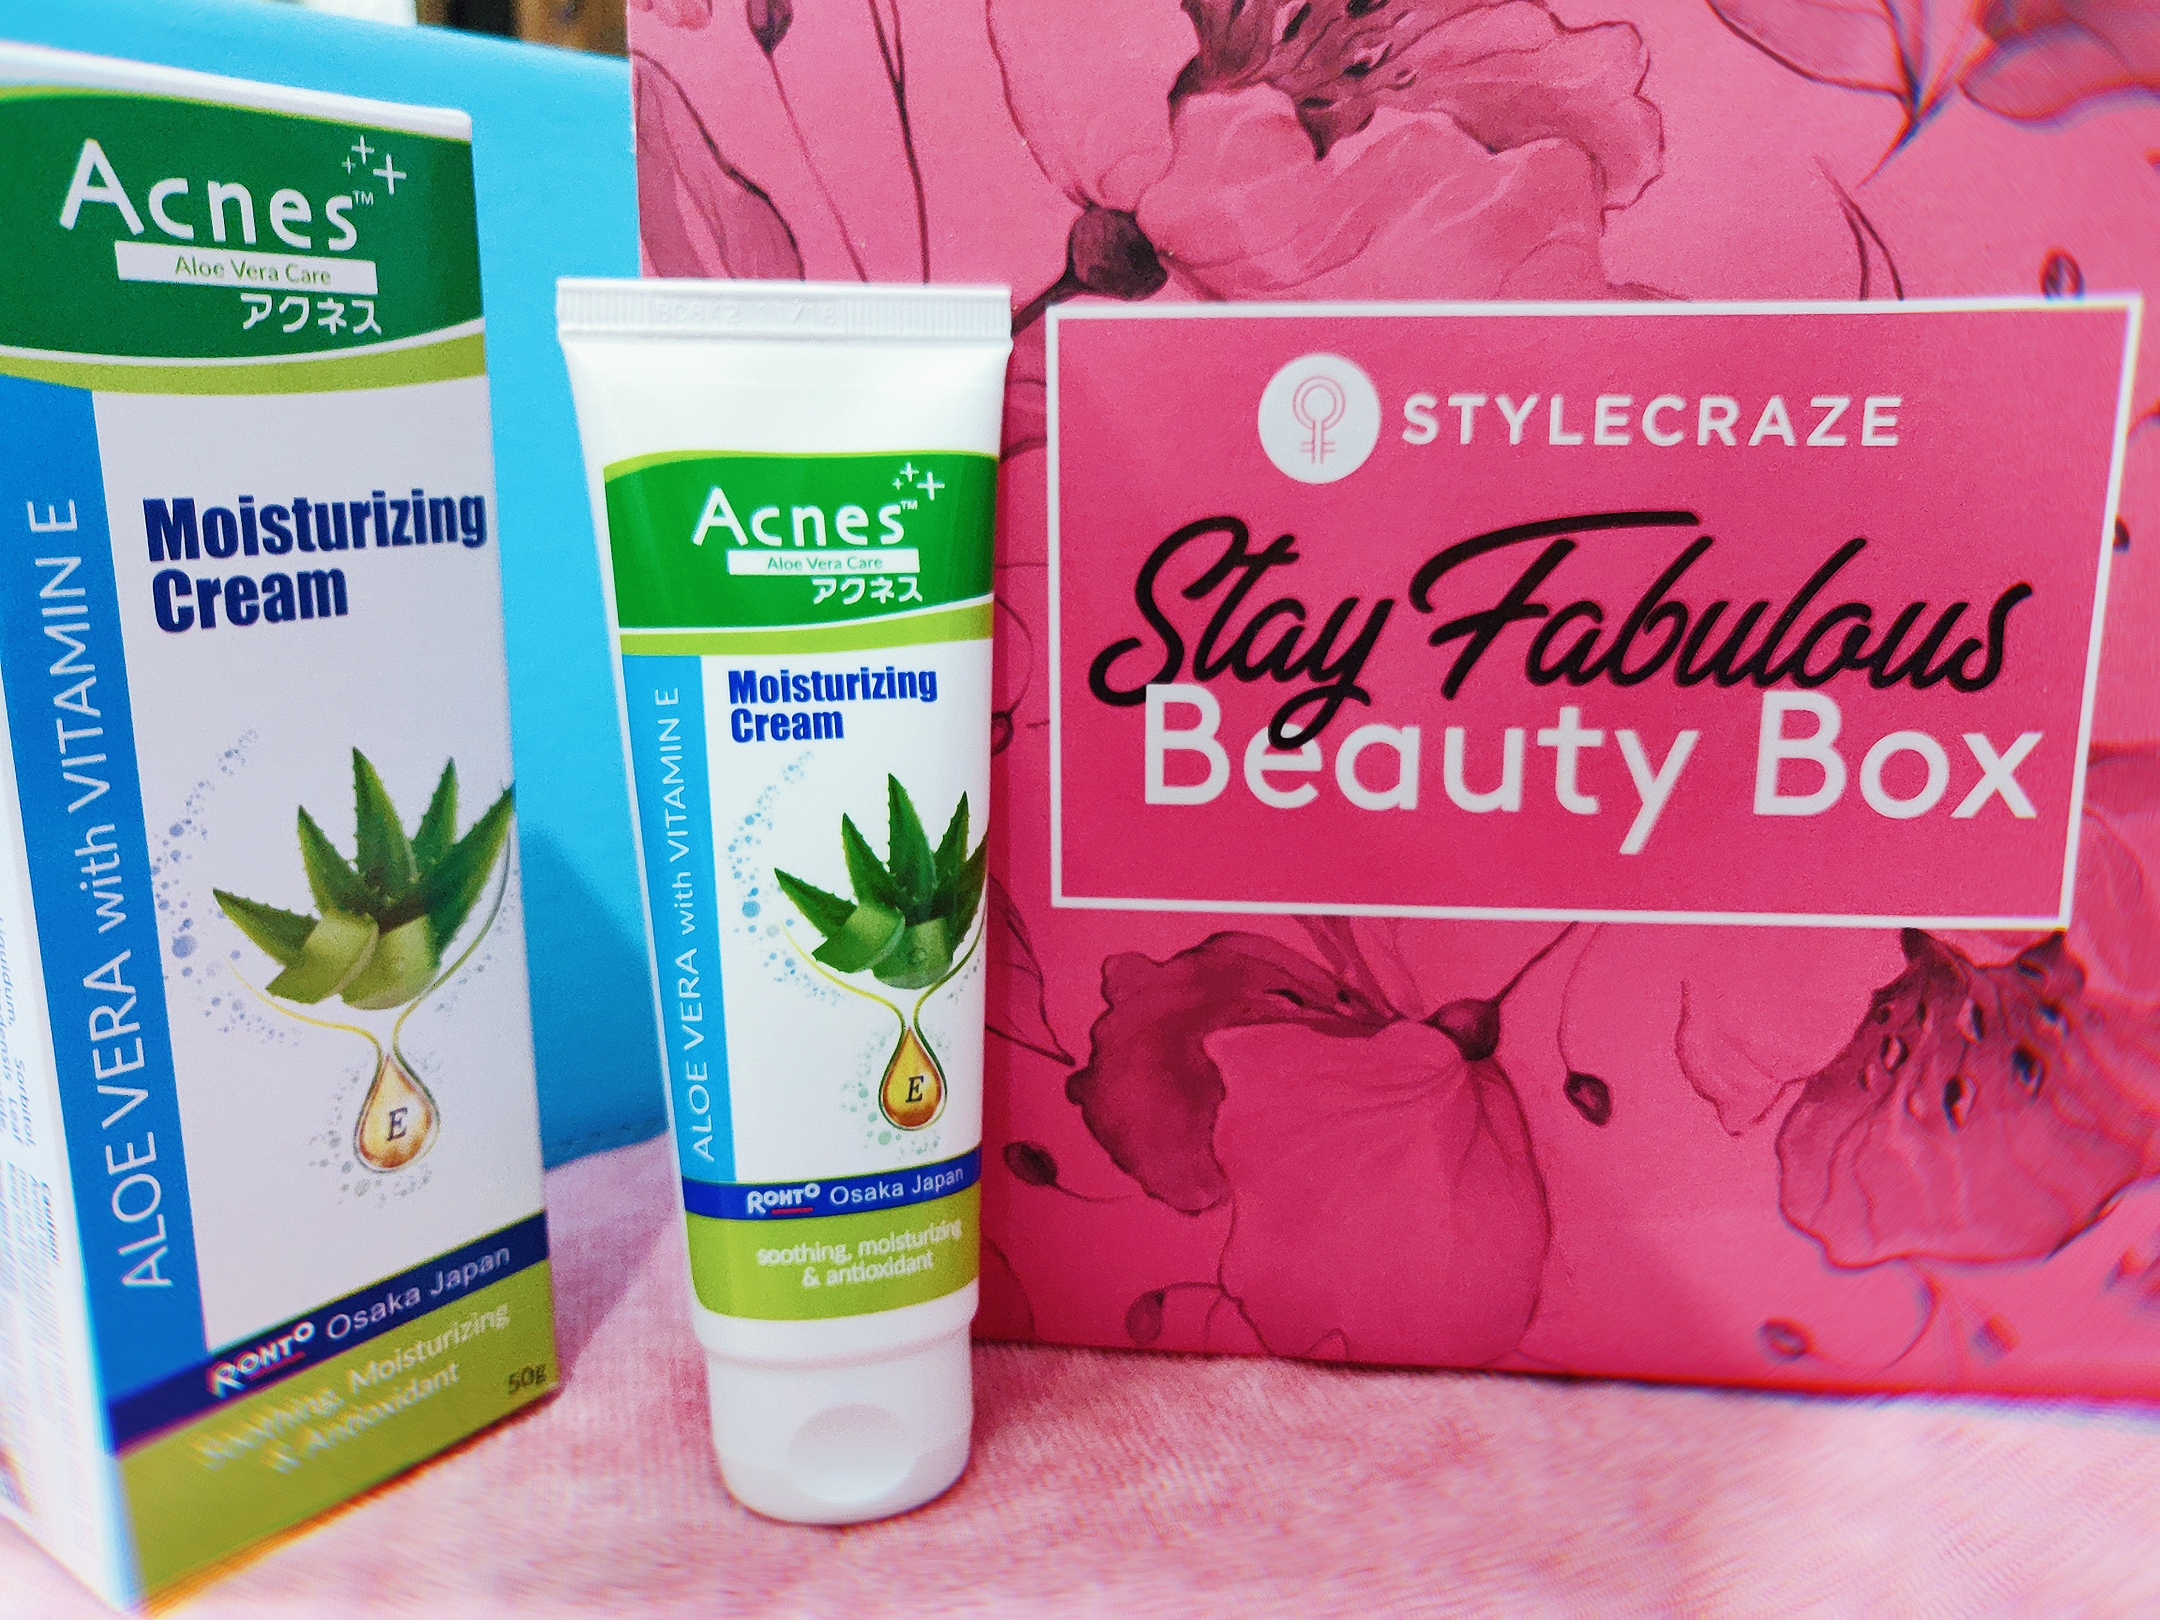 Acnes Aloe Vera With Vitamin E Moisturizing Cream-3 cheers for healthy skin!-By dr._curlyyy